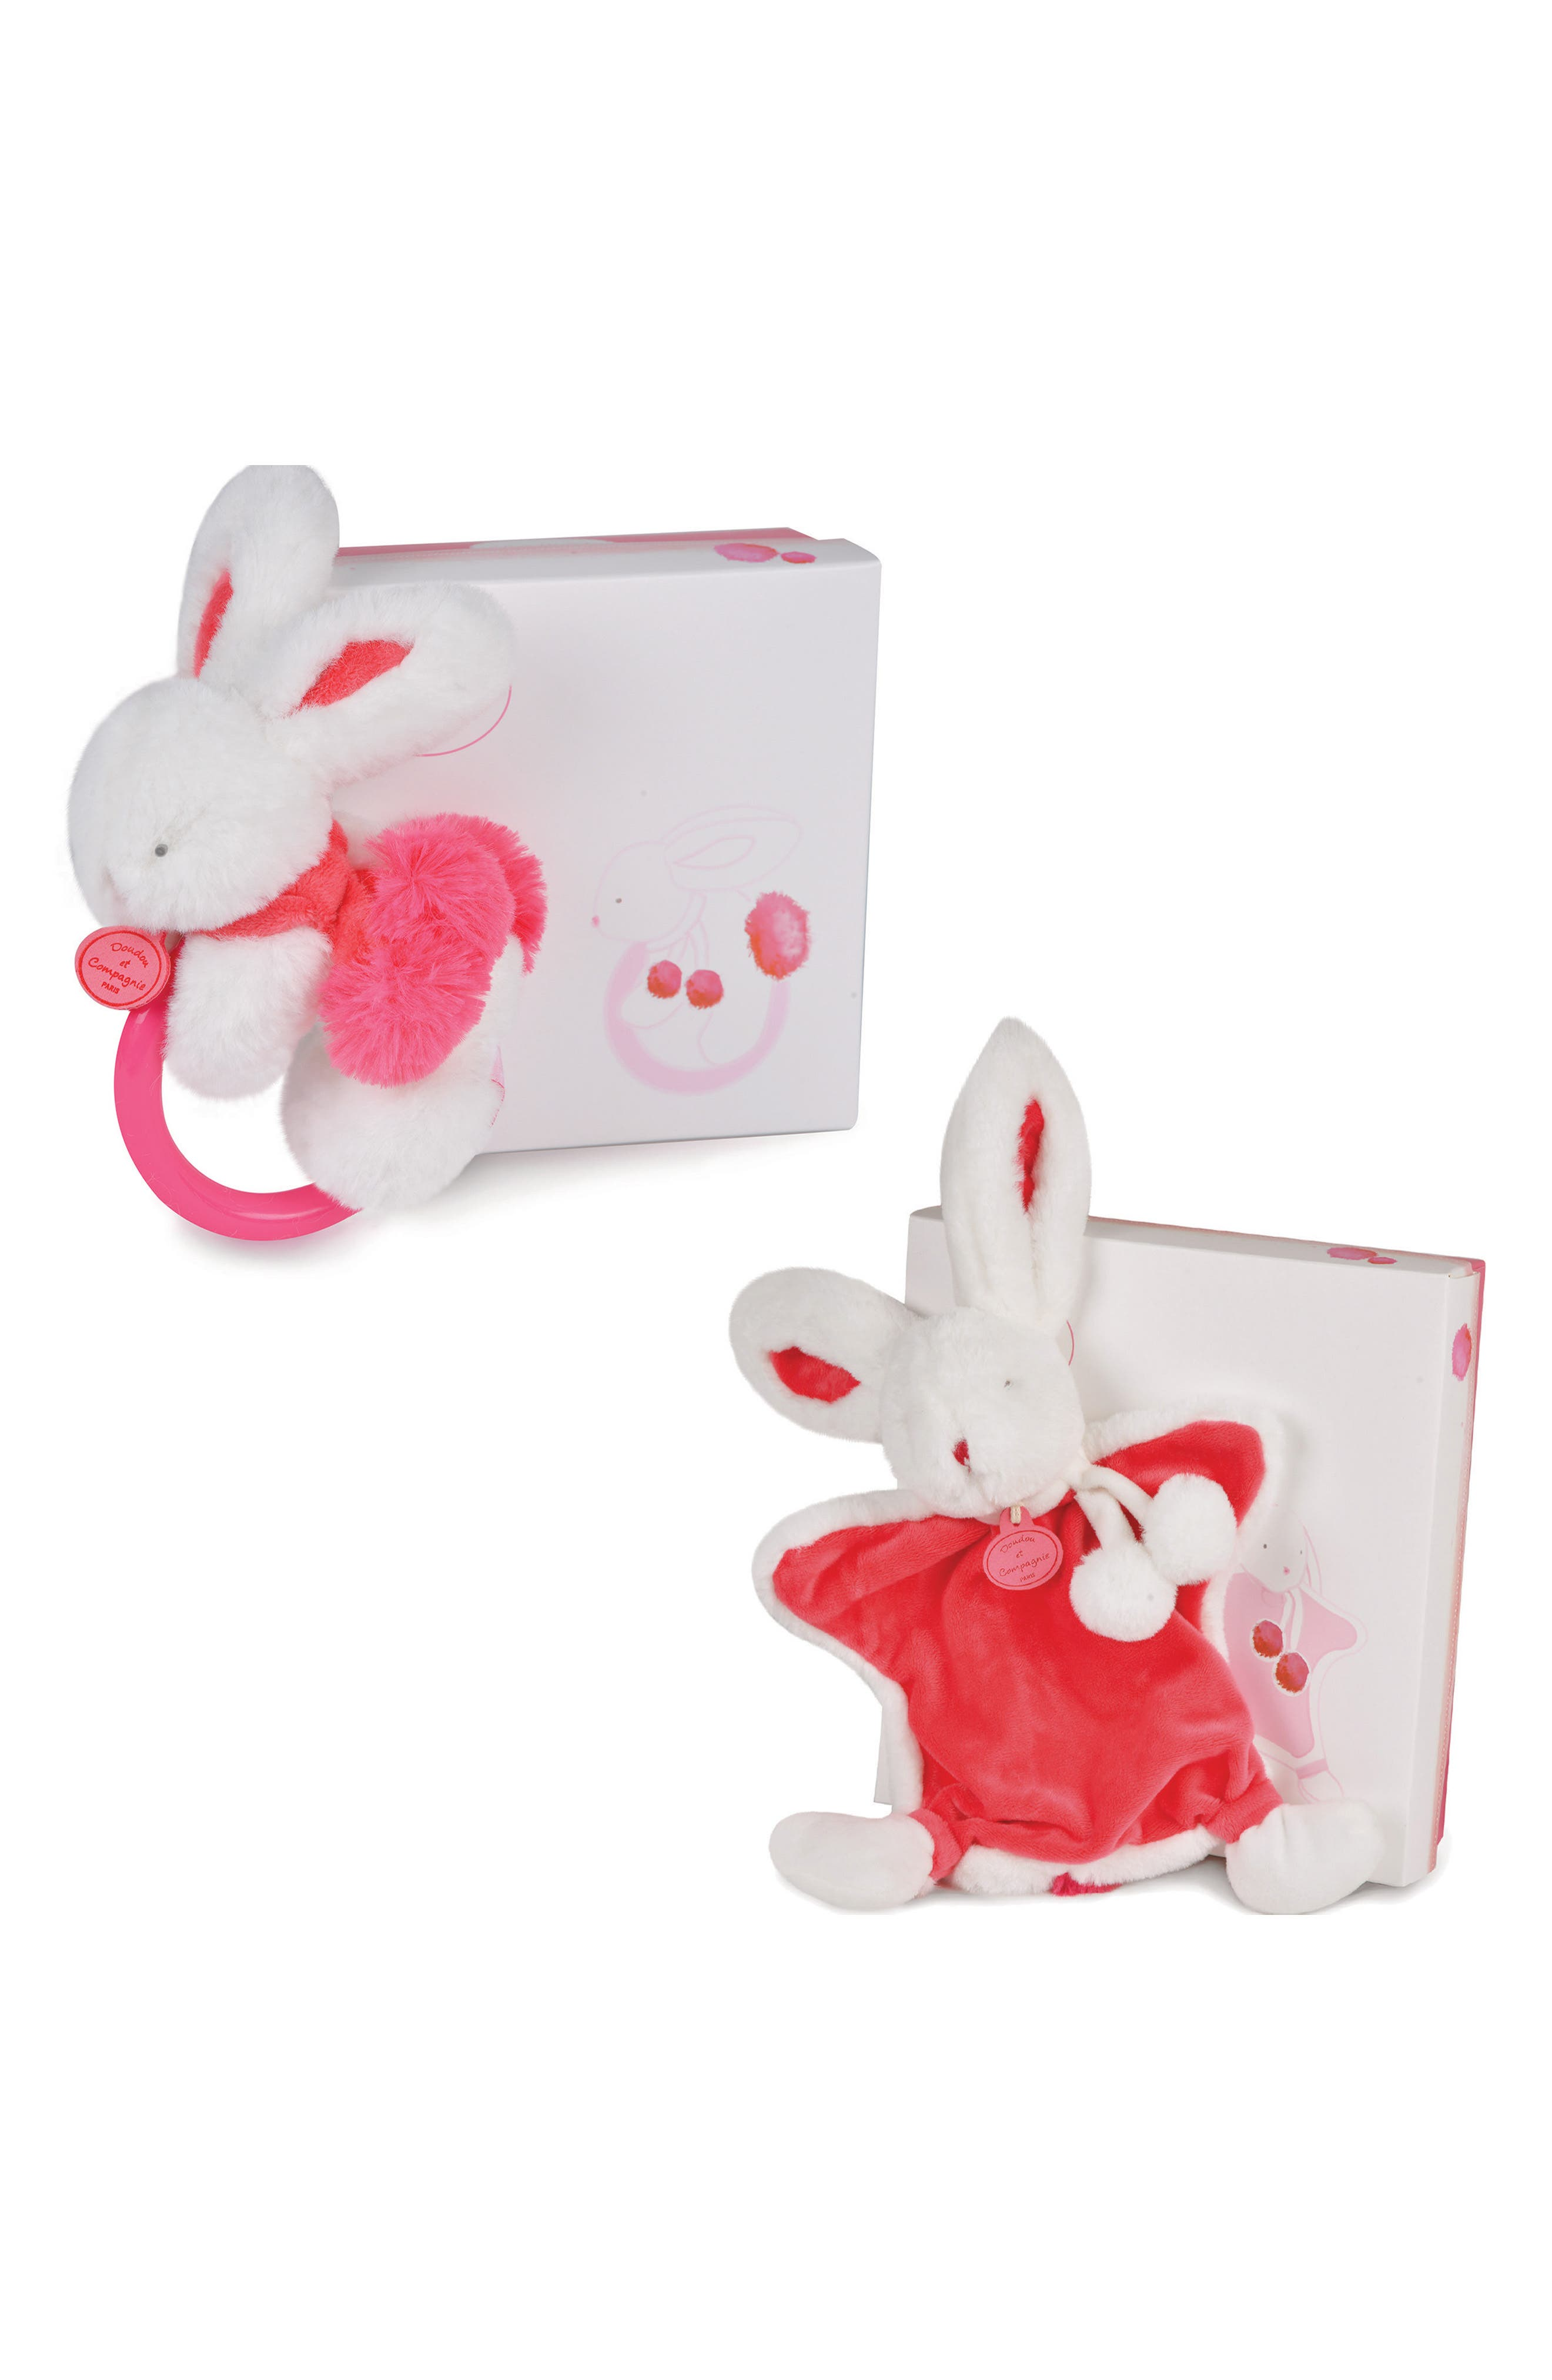 Strawberry Pink Bunny Rattle & Lovie Blanket Gift Set,                             Main thumbnail 1, color,                             650